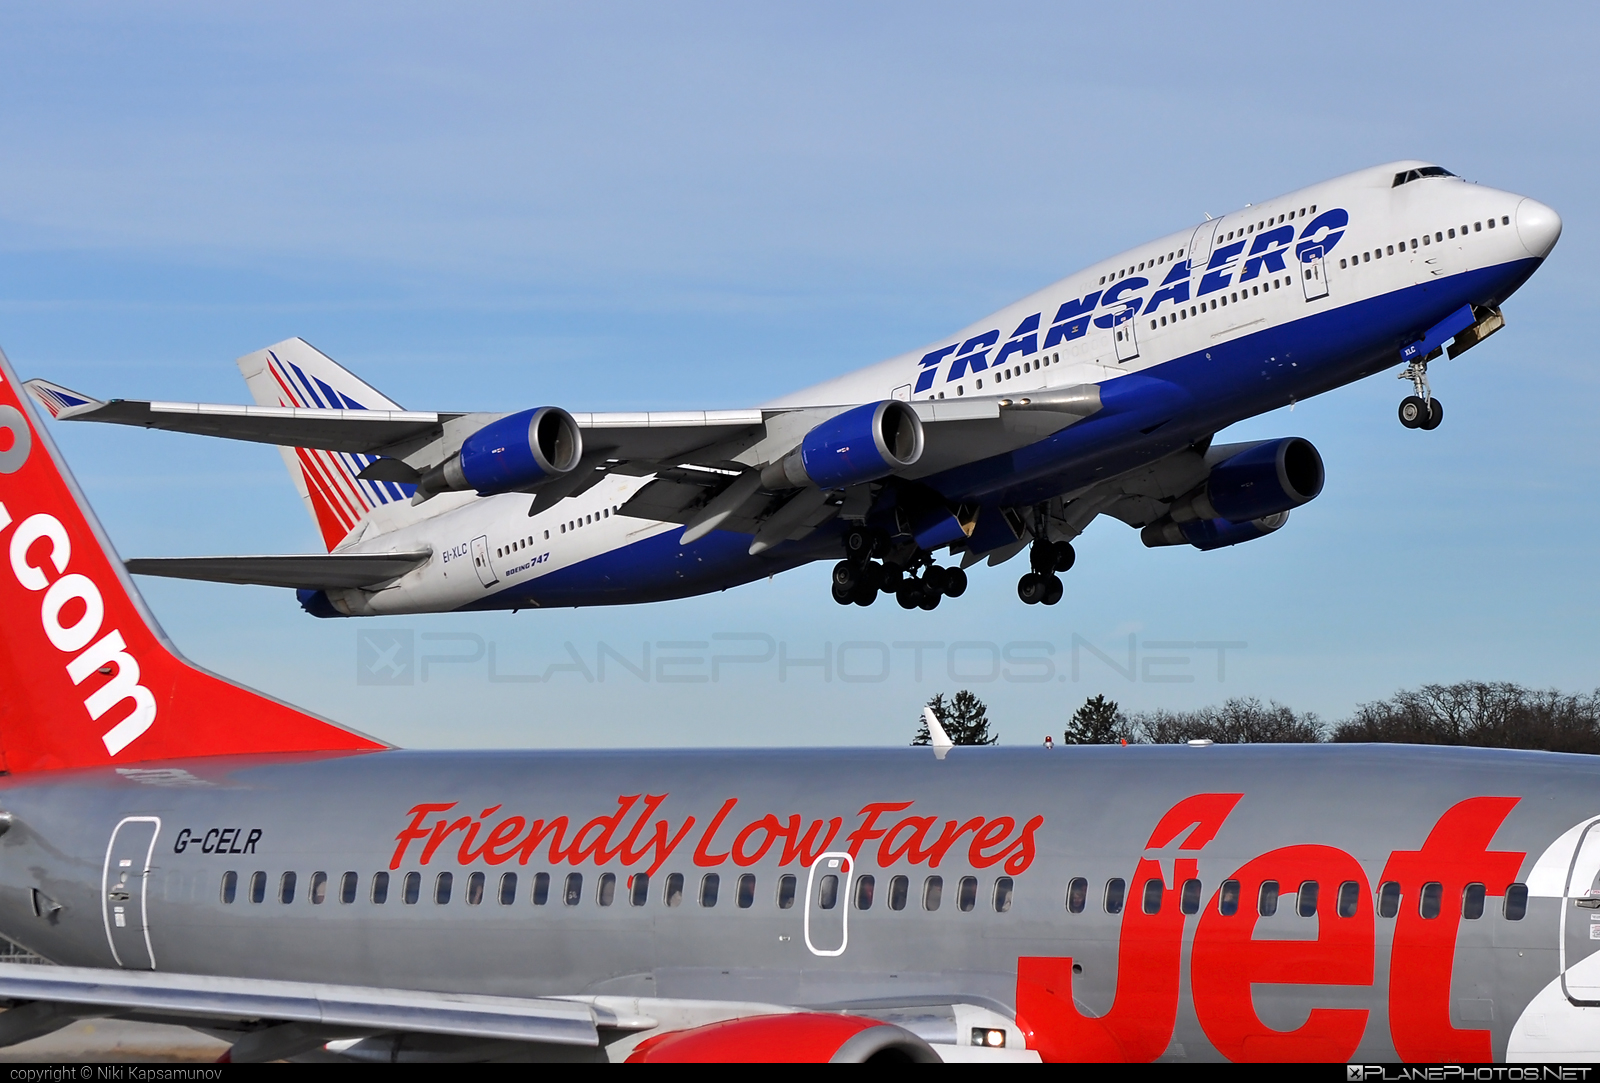 Boeing 747-400 - EI-XLC operated by Transaero Airlines #b747 #boeing #boeing747 #jumbo #transaero #transaeroairlines